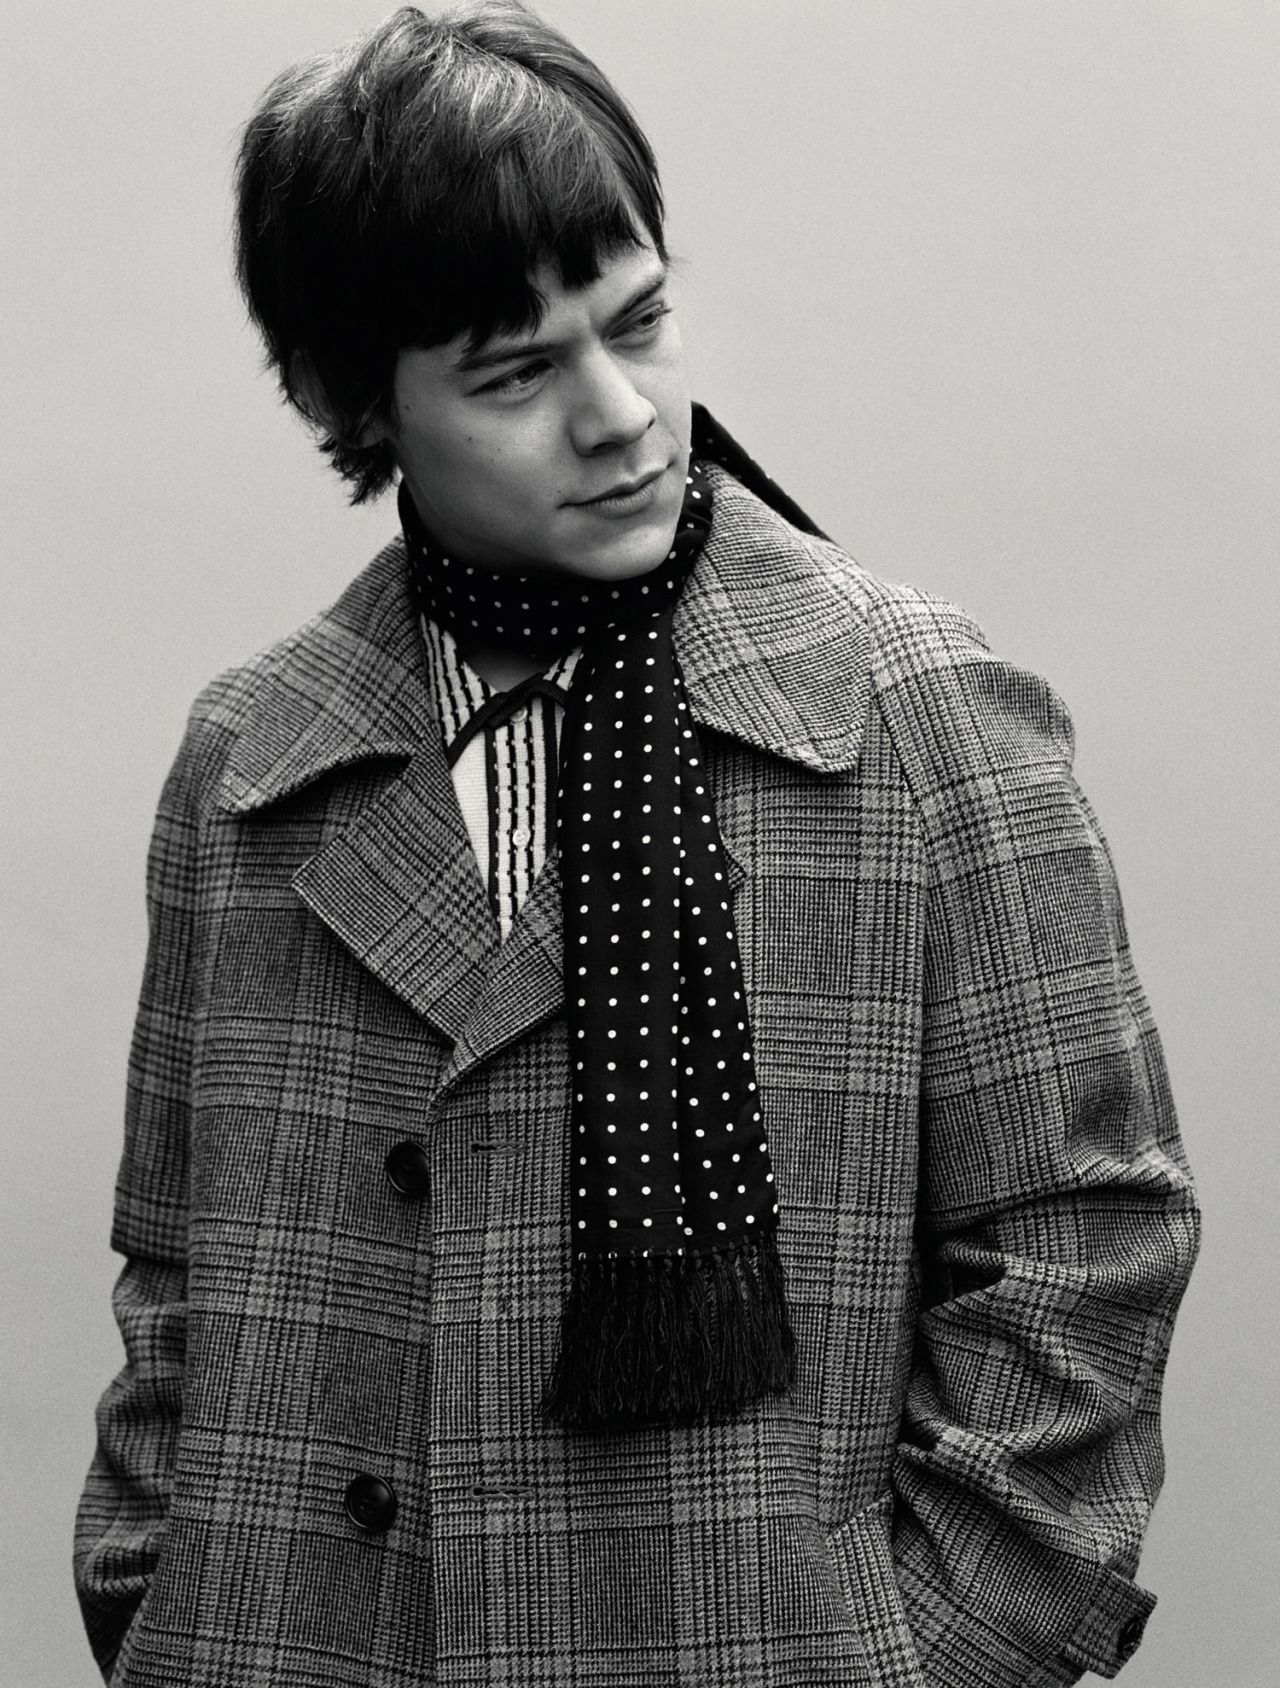 Harry Styles wearing Marc Jacobs Fall '16. Shot by Alasdair McLellan, styled by Alister Mackie for Another Man